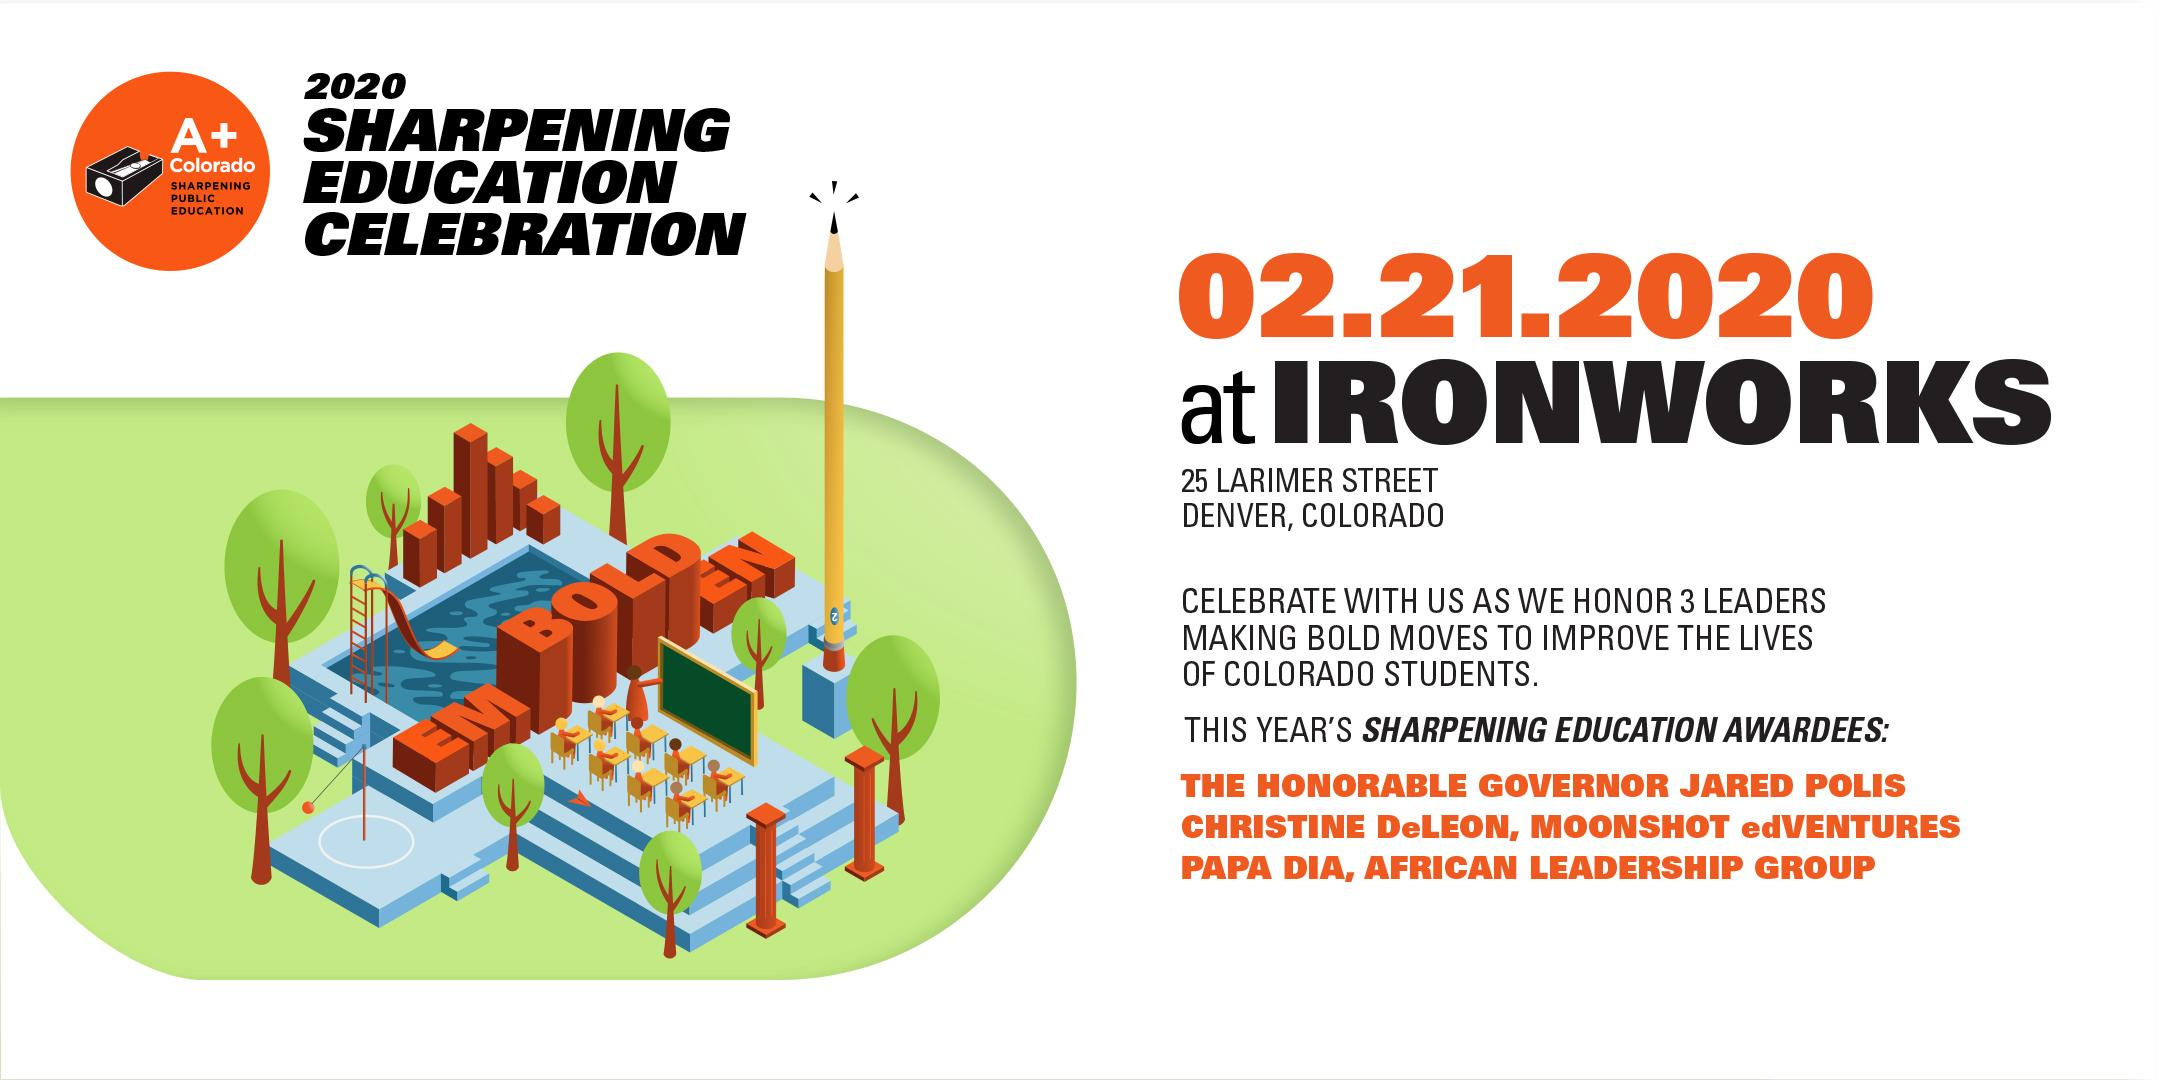 A+ Colorado: Sharpening Education Celebration